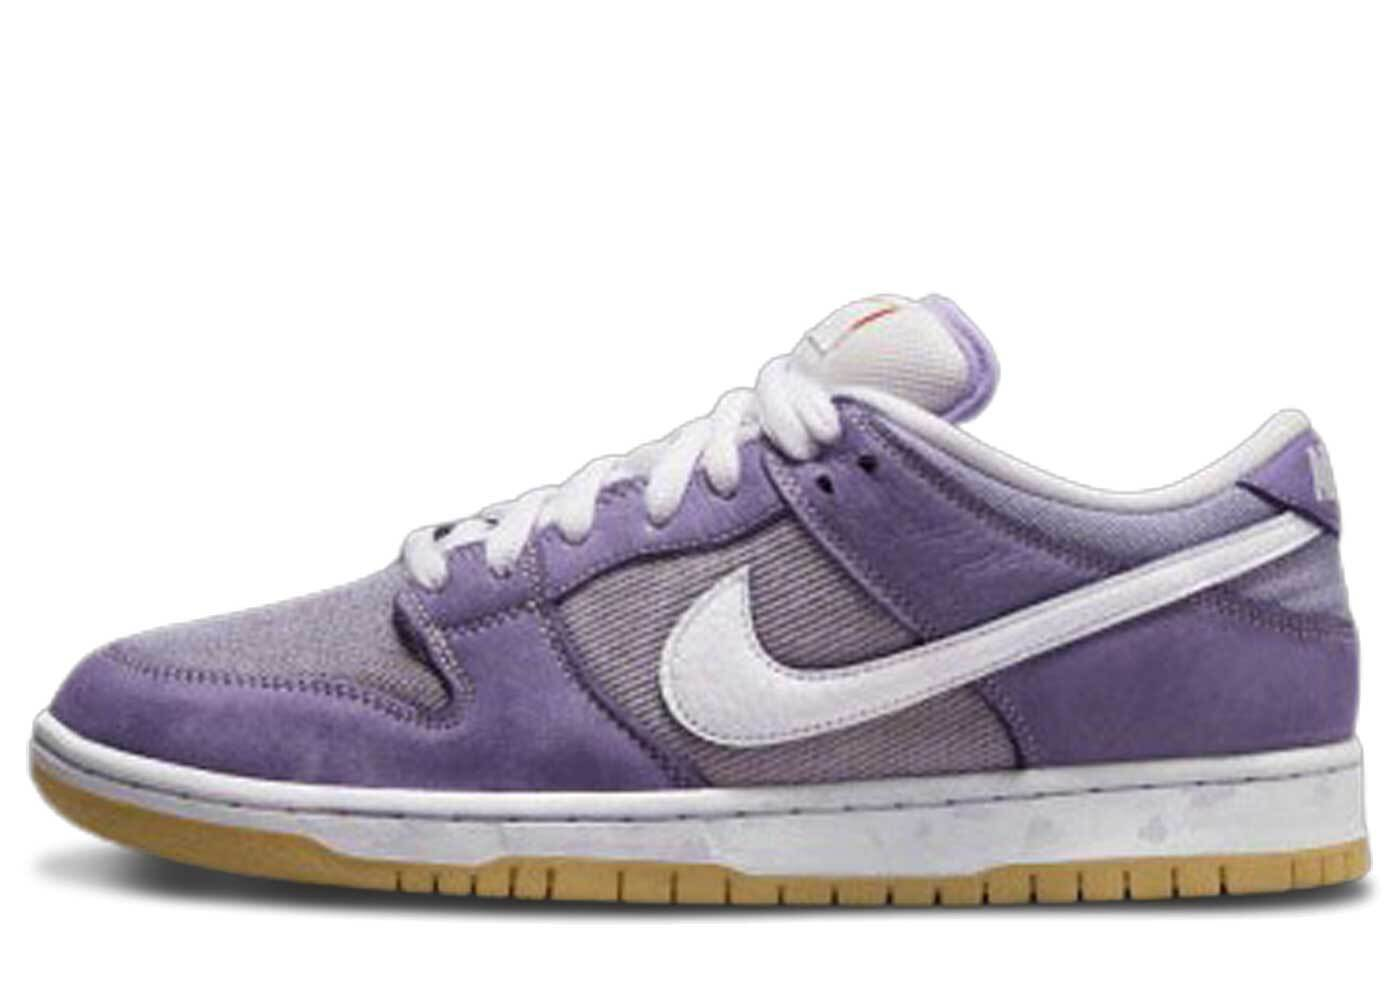 Nike SB Dunk Low Pro ISO Unbleached Packの写真